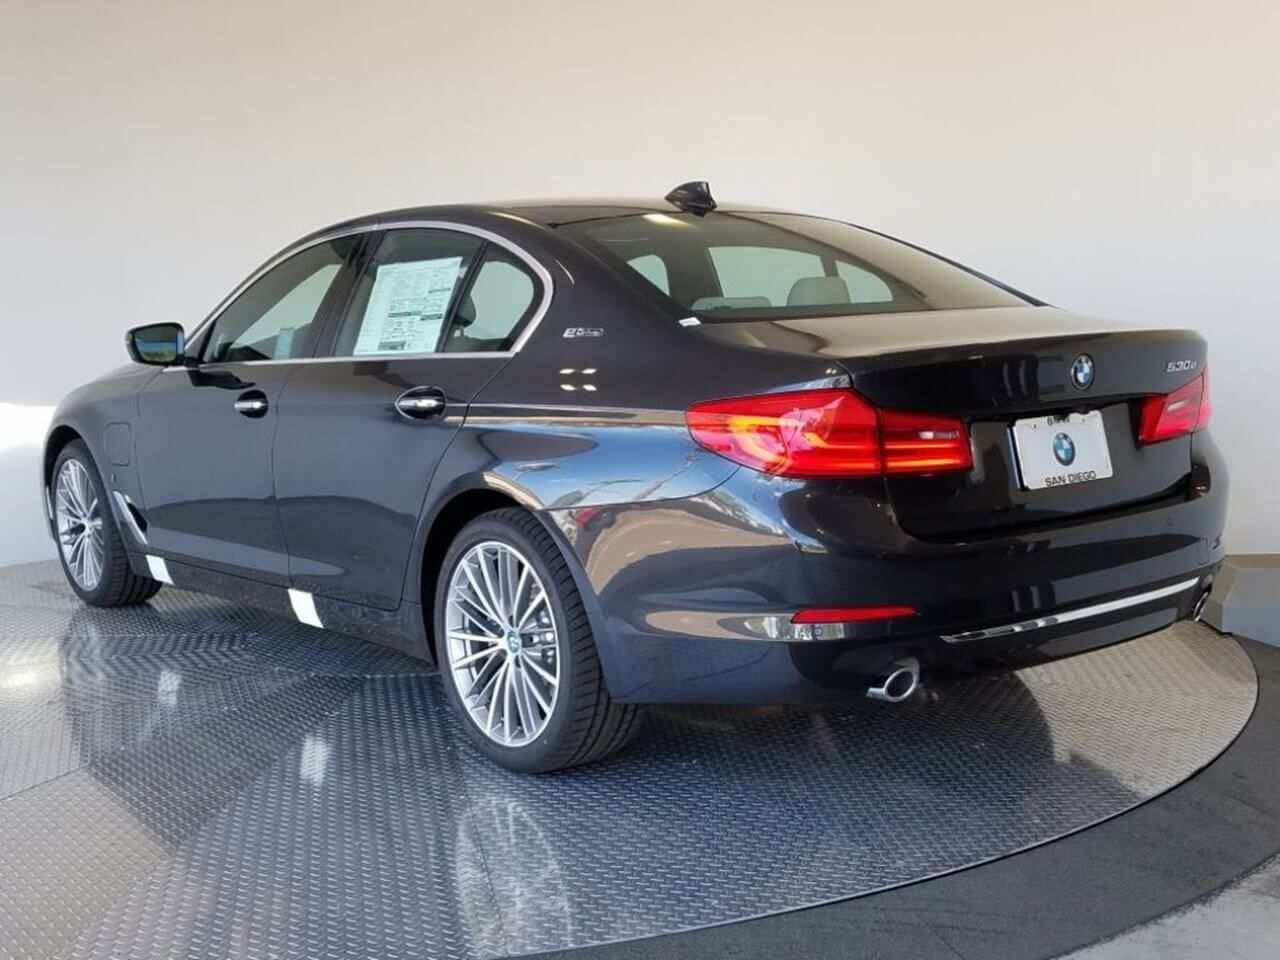 73 All New 2020 BMW 5 Series Price by 2020 BMW 5 Series